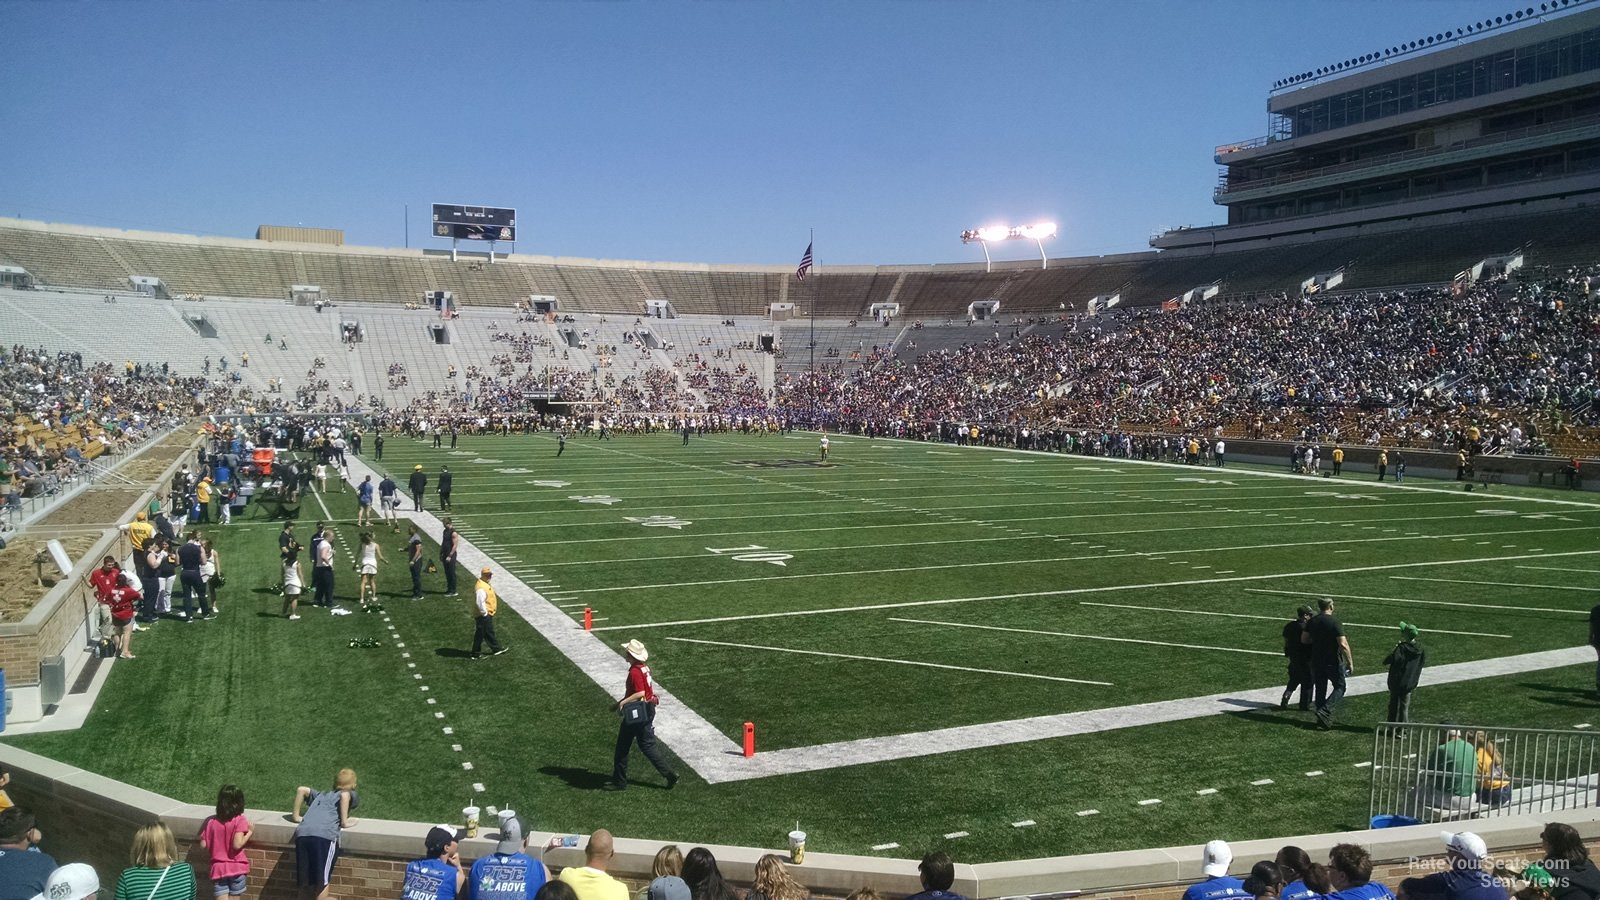 Section 22 at Notre Dame Stadium - RateYourSeats.com